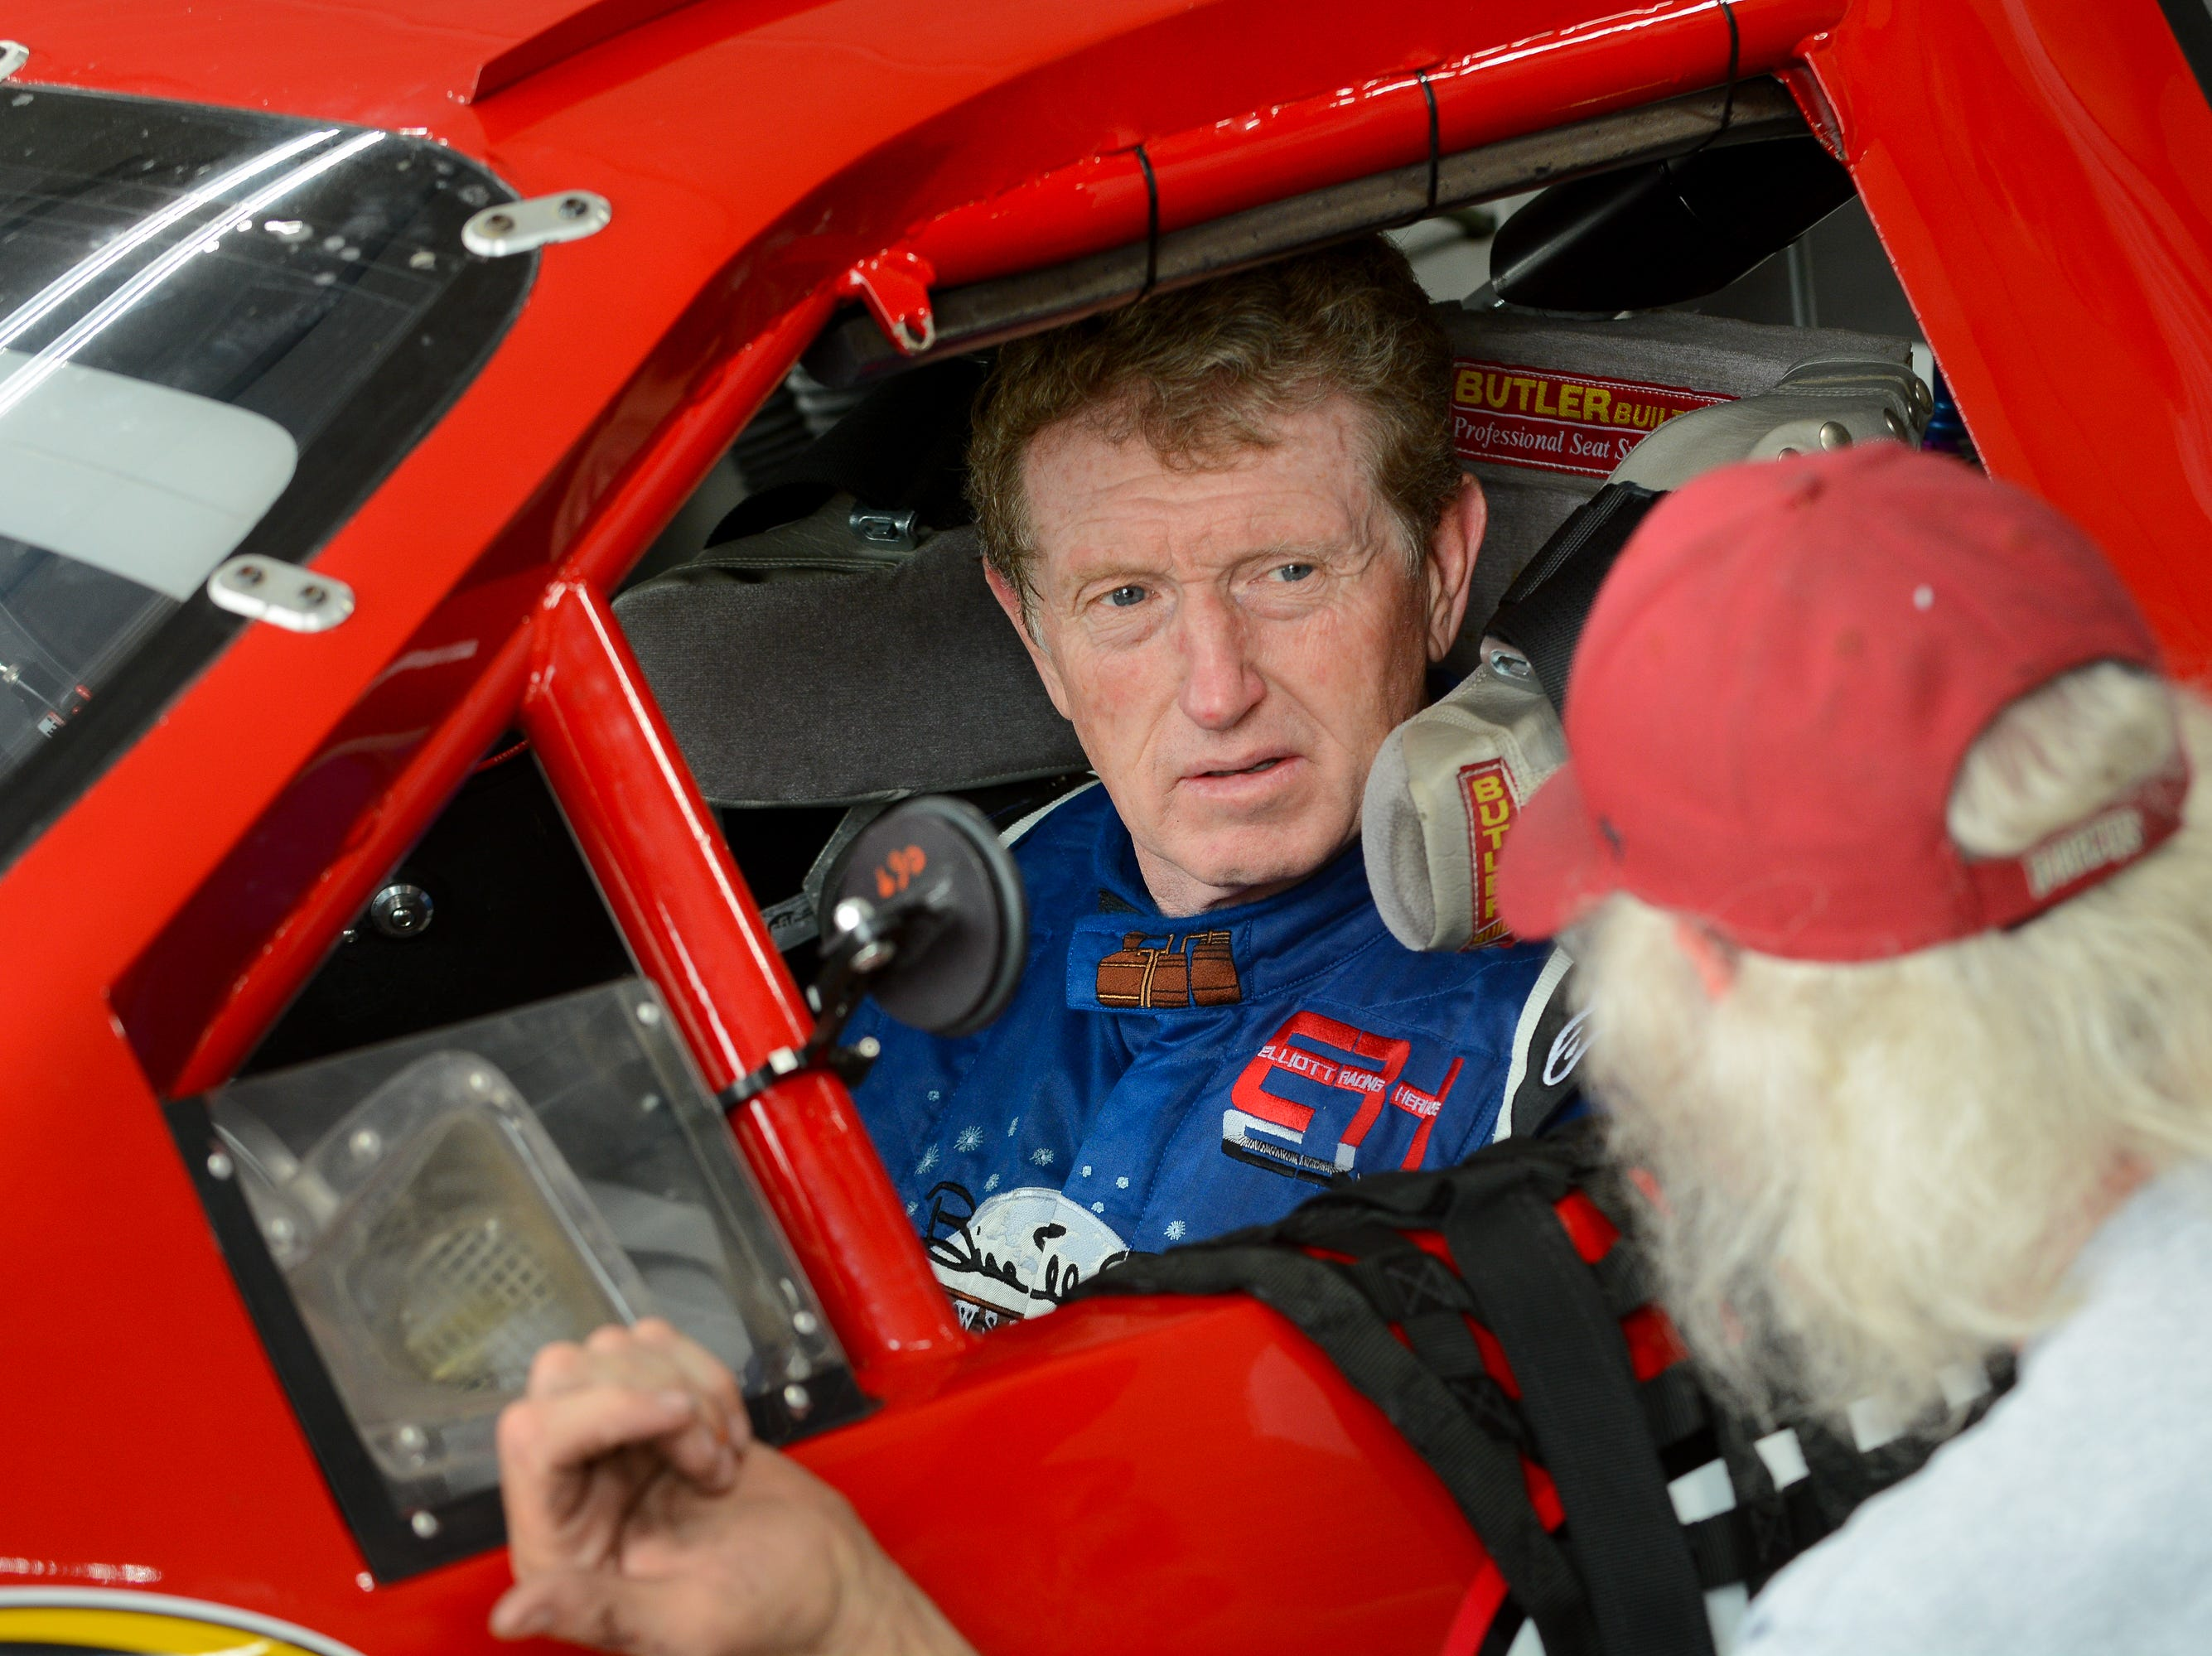 NASCAR Hall of Famer Bill Elliott prepares for a run in a vintage Dodge stock car during a test-and-tune day Thursday, August 16, 2018, at Road America.